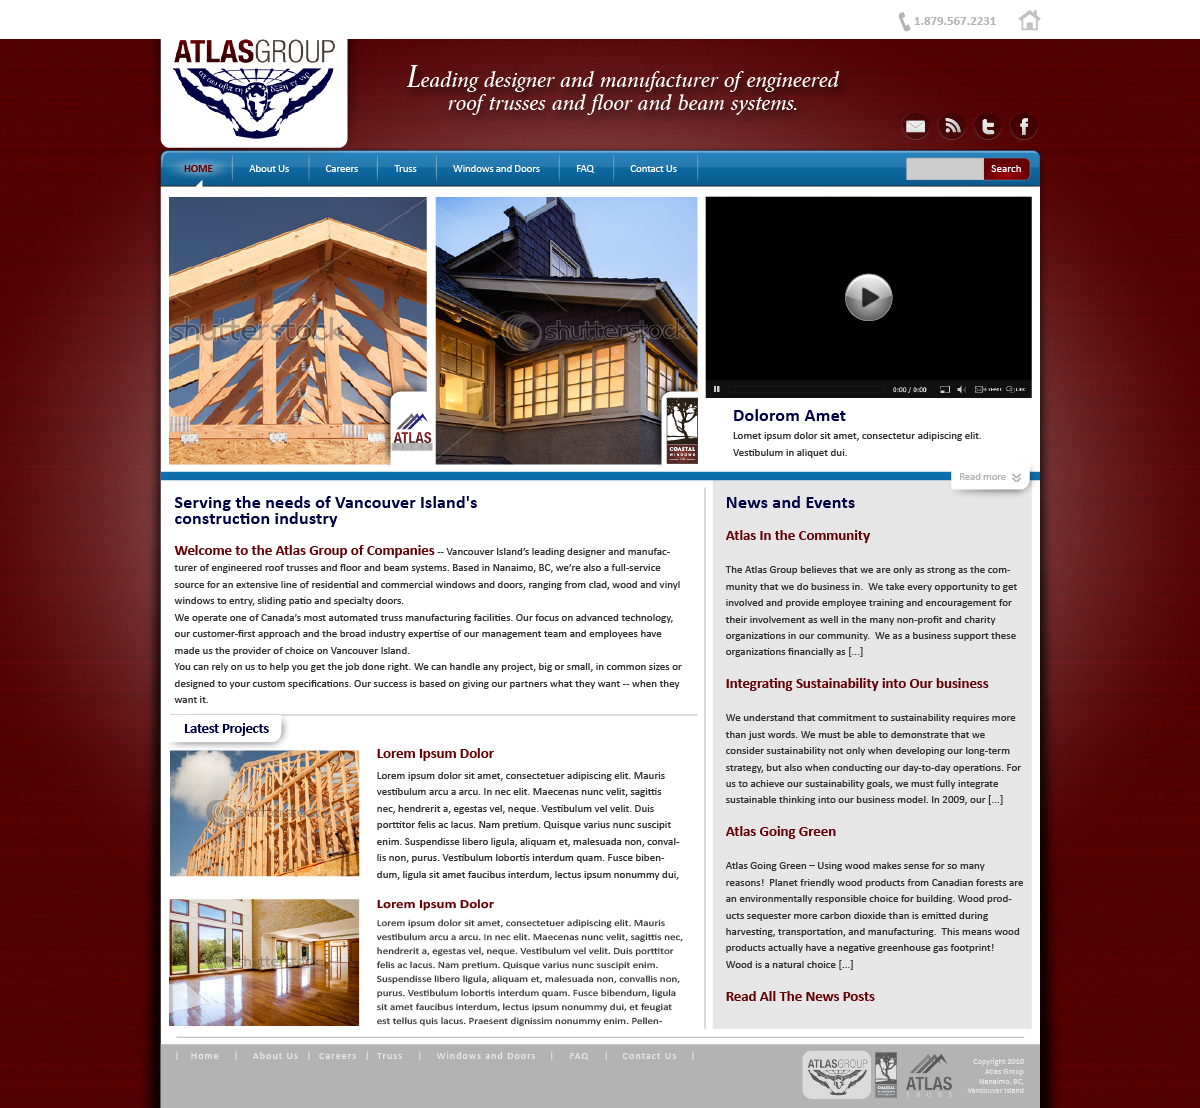 Web Page Design by zesthar - Entry No. 79 in the Web Page Design Contest The Atlas Group Website.